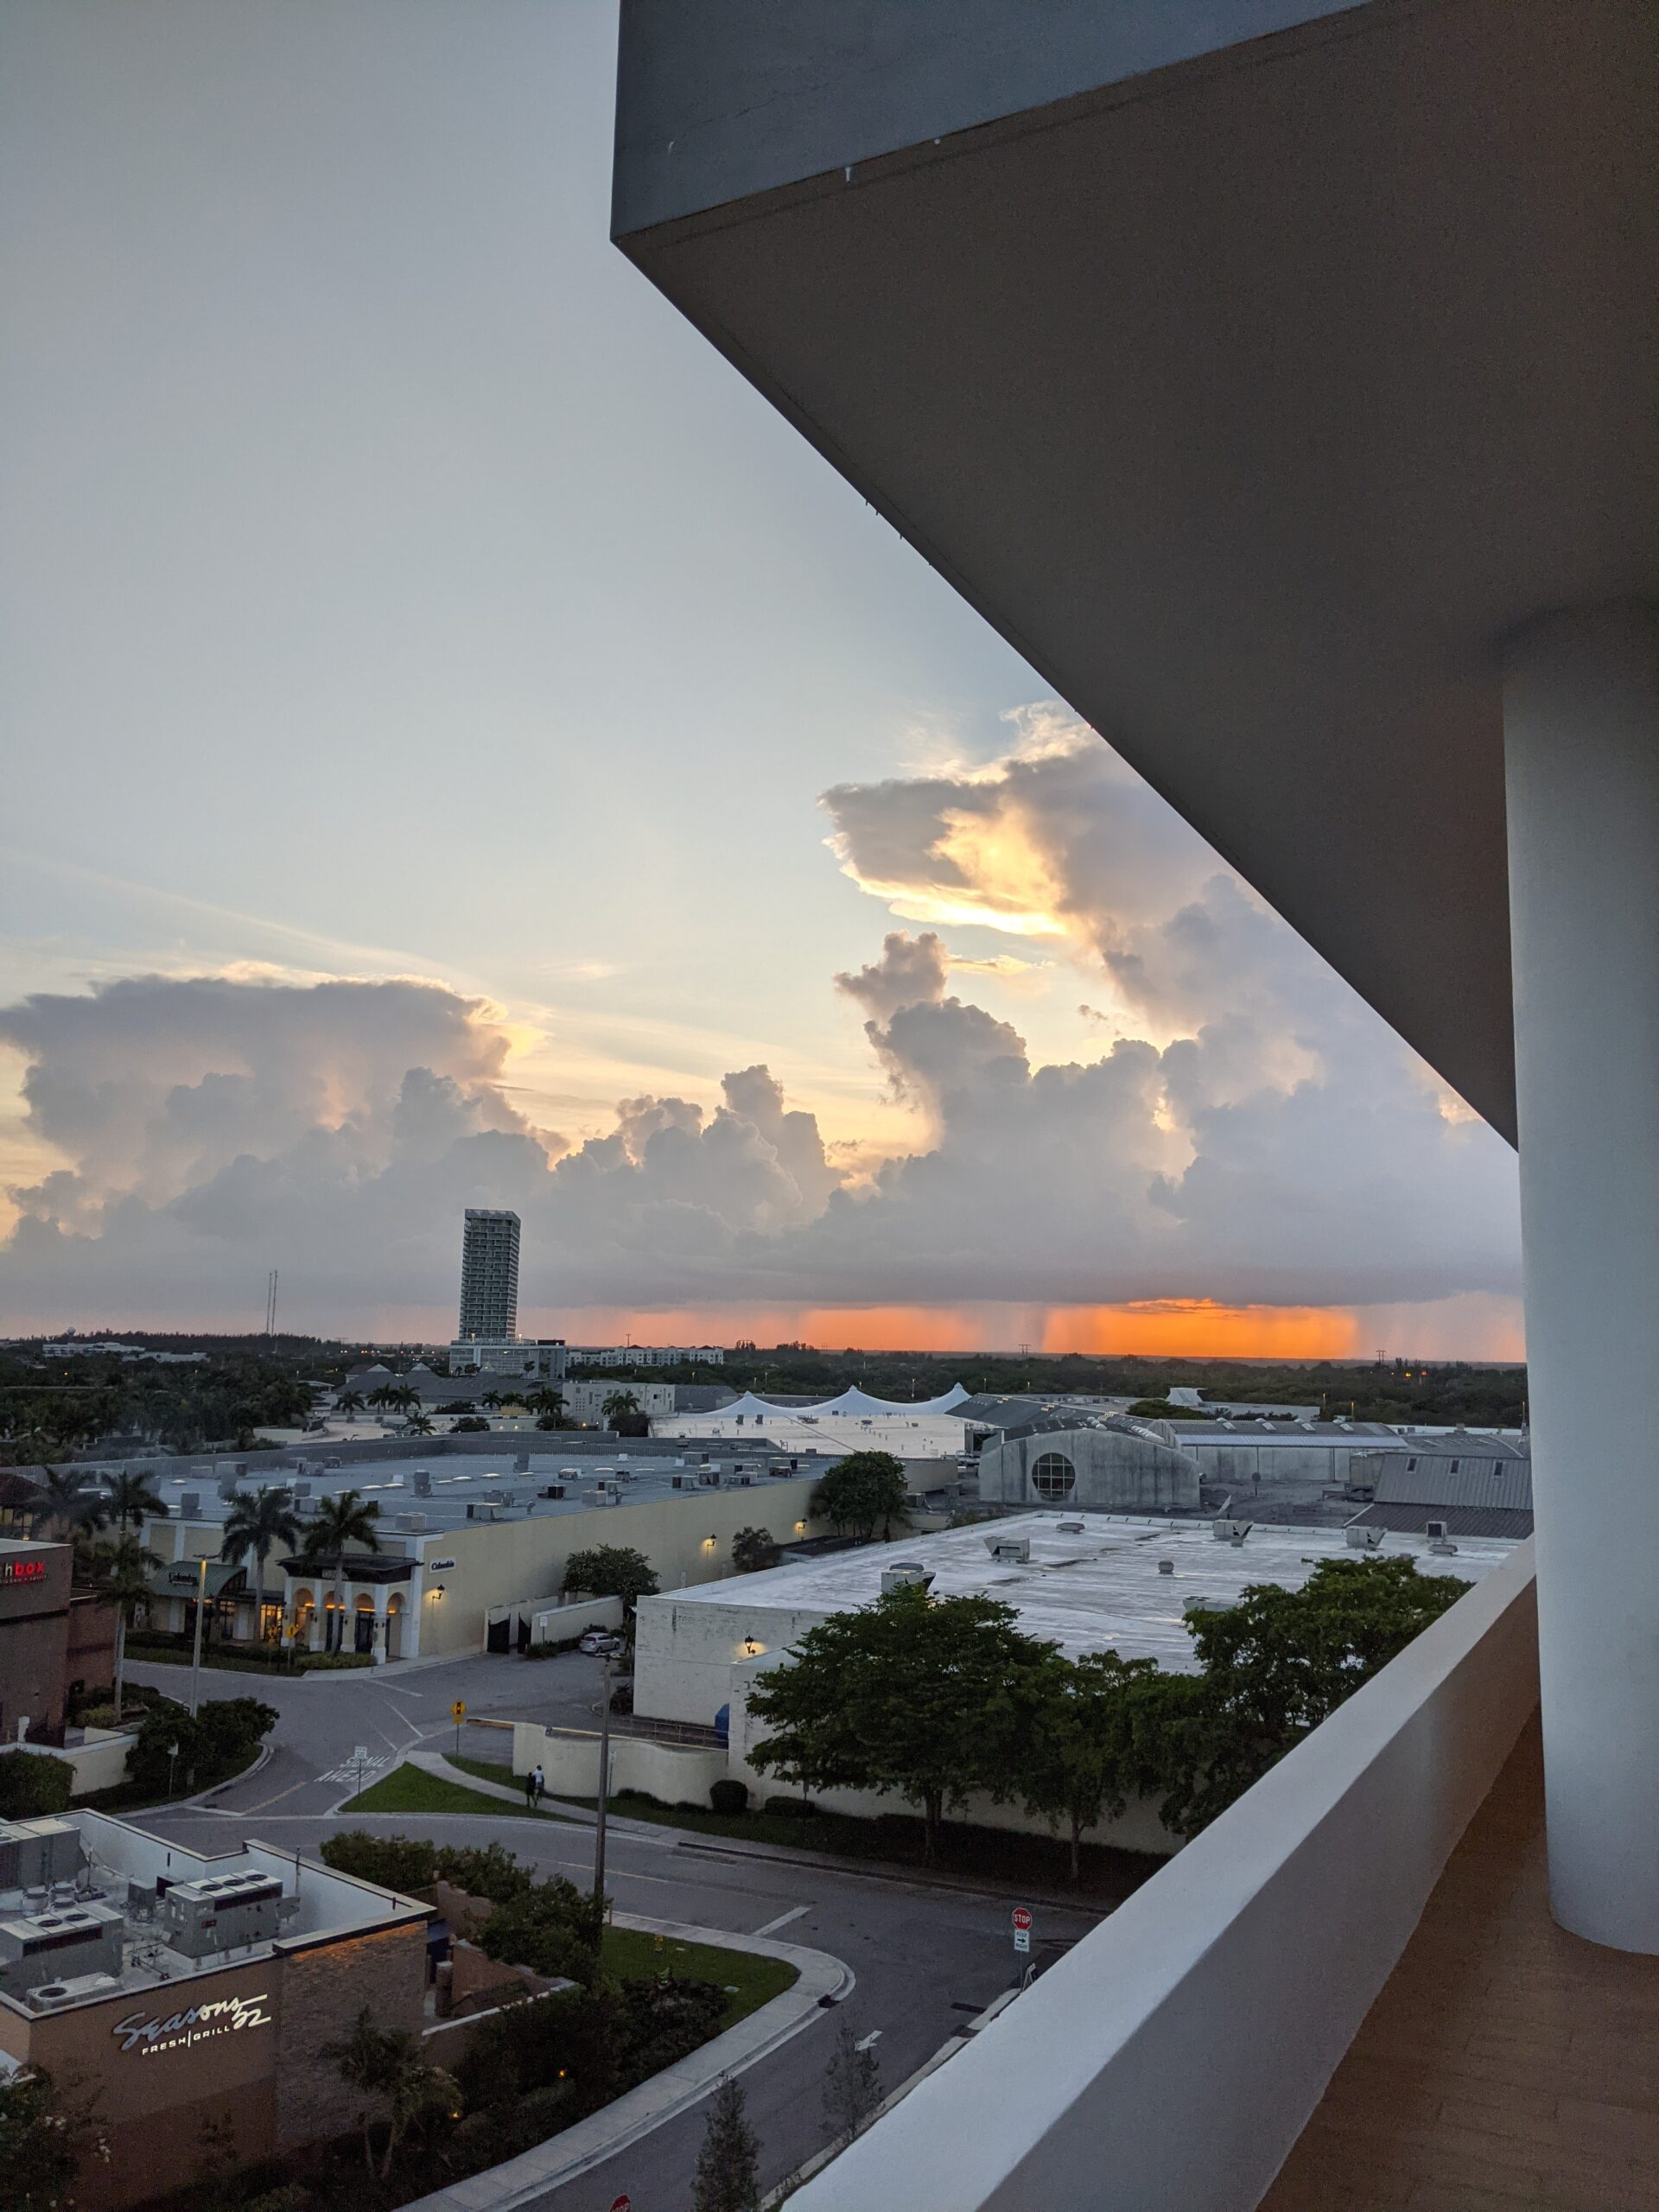 Sunset from the AC Hotel Marriot Sawgrass Mills in Ft. Lauderdale Florida